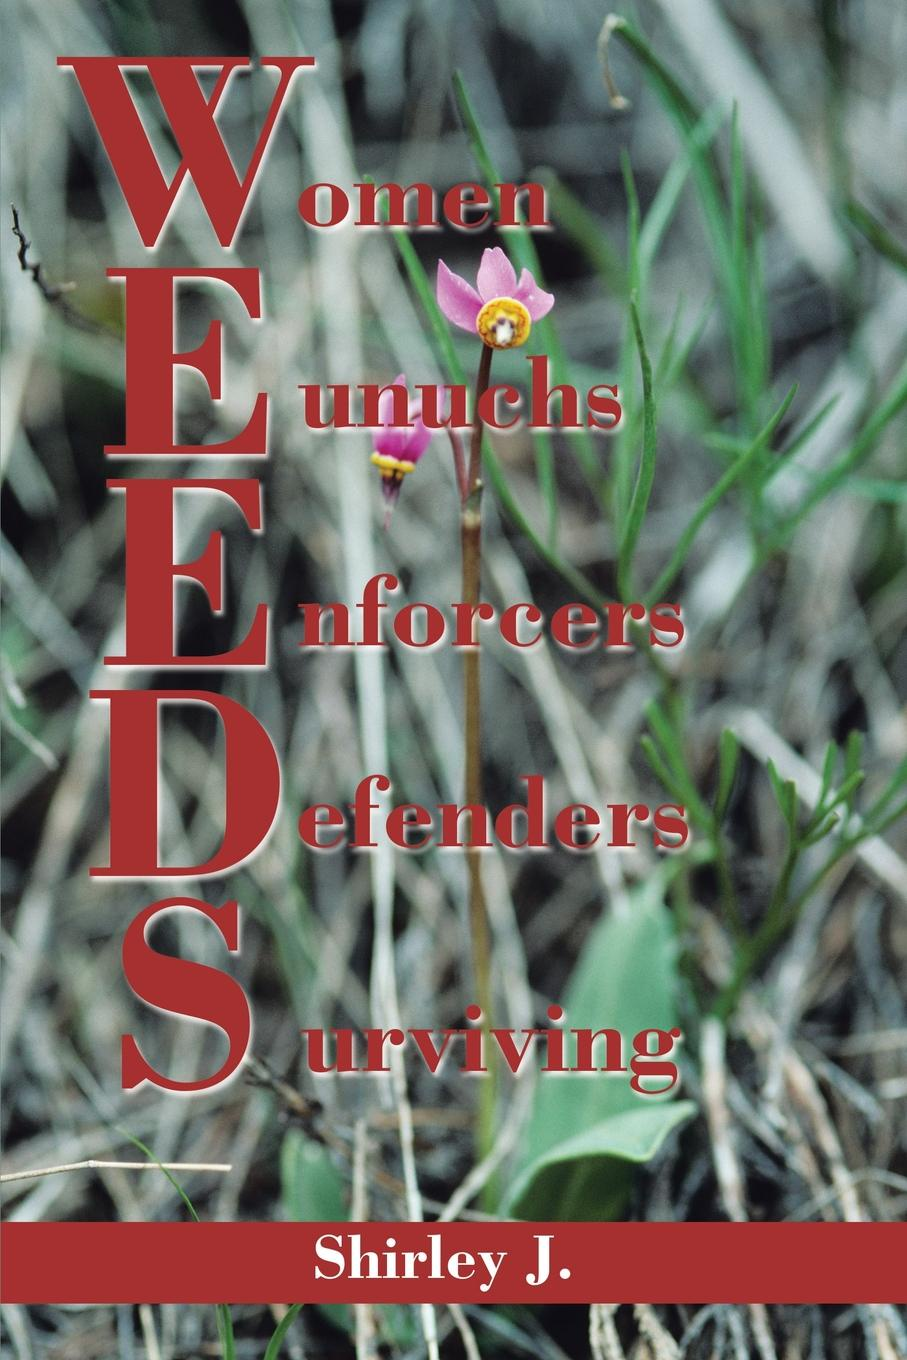 Wildflowers and Weeds: A Collection of Poems (1980-2010)